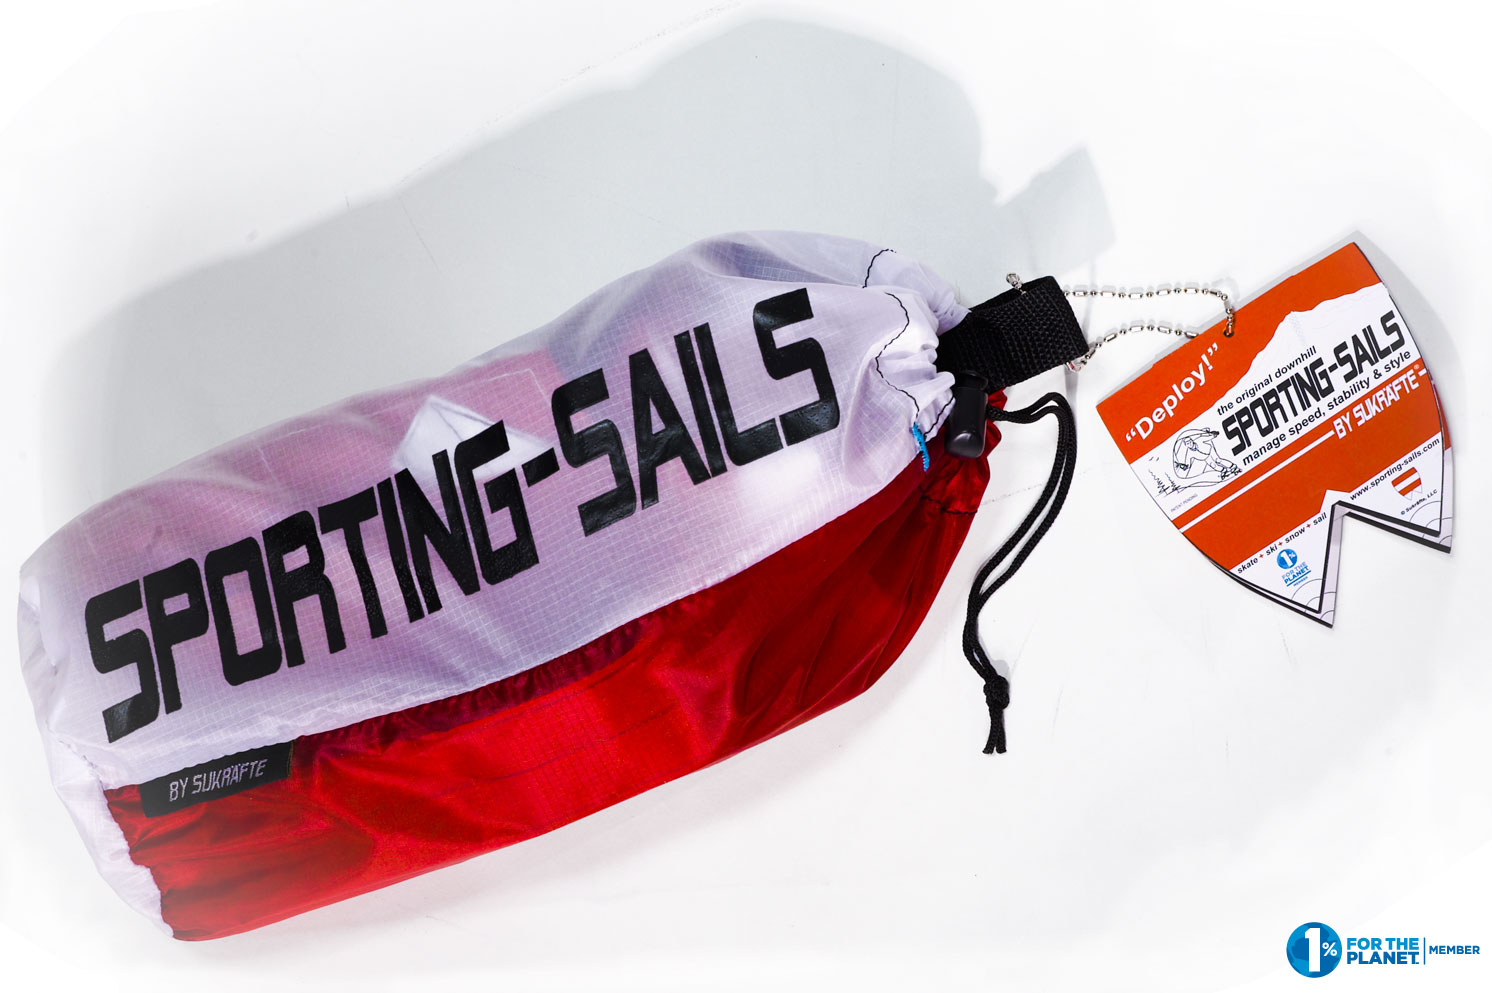 SPORTING-SAILS - Dealers